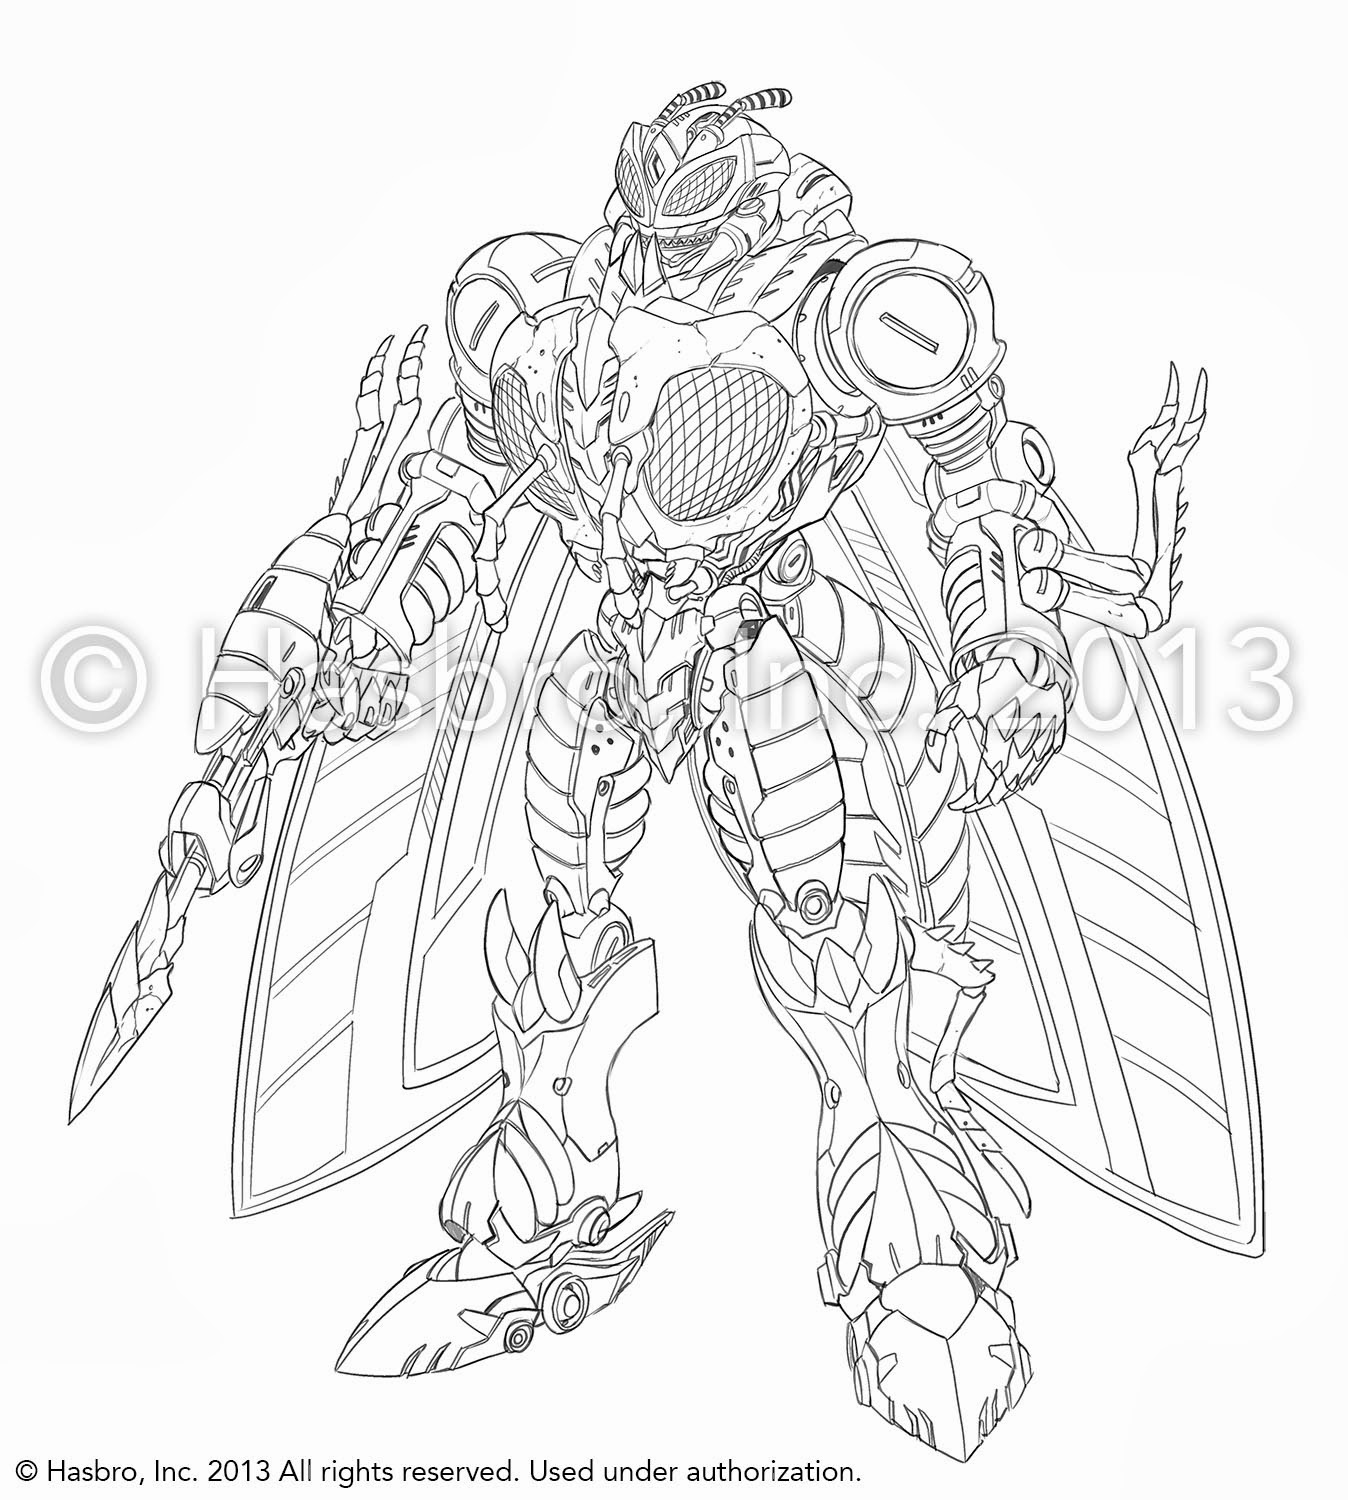 Concept Art TF Generations officiel par Emiliano Santalucia, Ken Christiansen, Marcelo Matere, Robby Musso, etc Waspinator+1